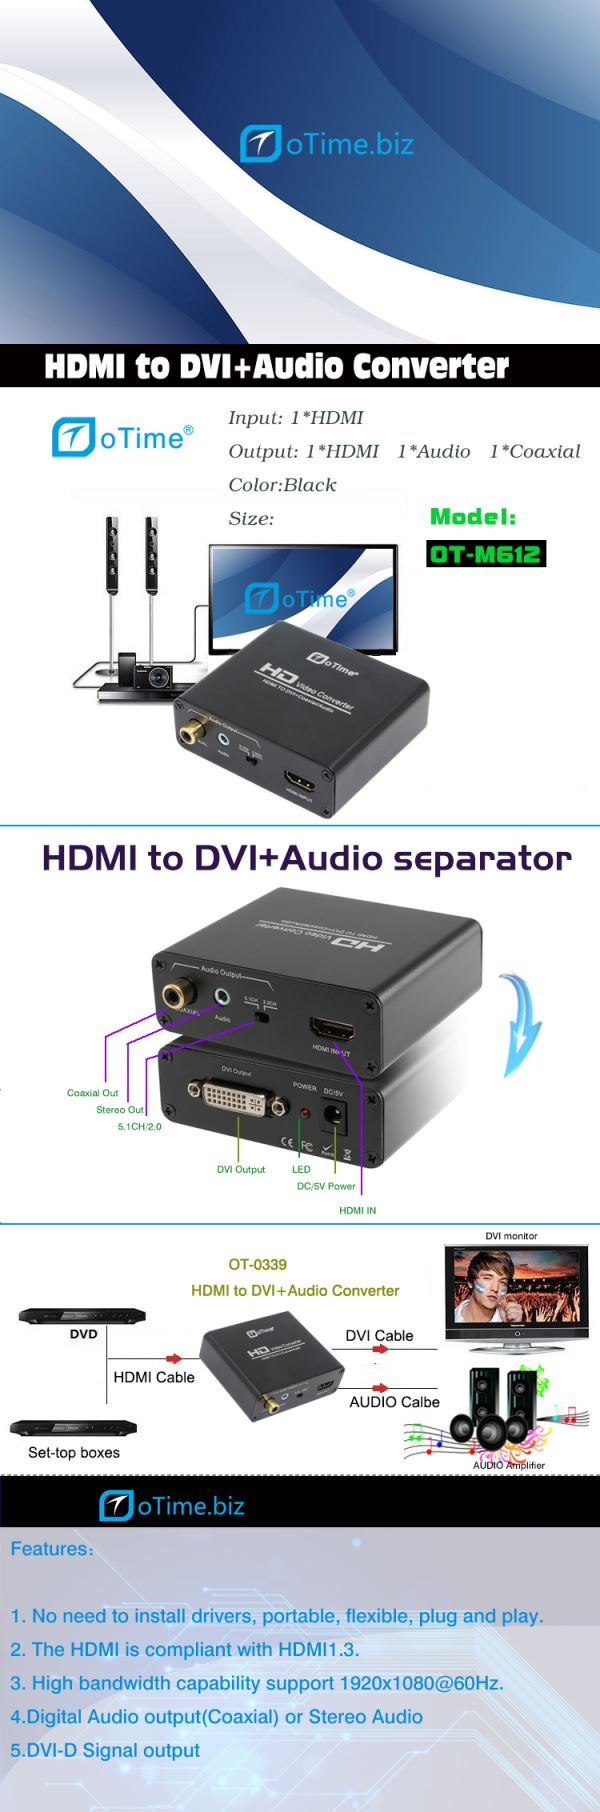 Cabledeconn active hdmi female to vga male output 35 audio converter adapter 1080p for notebook xbox 360 ps3 4